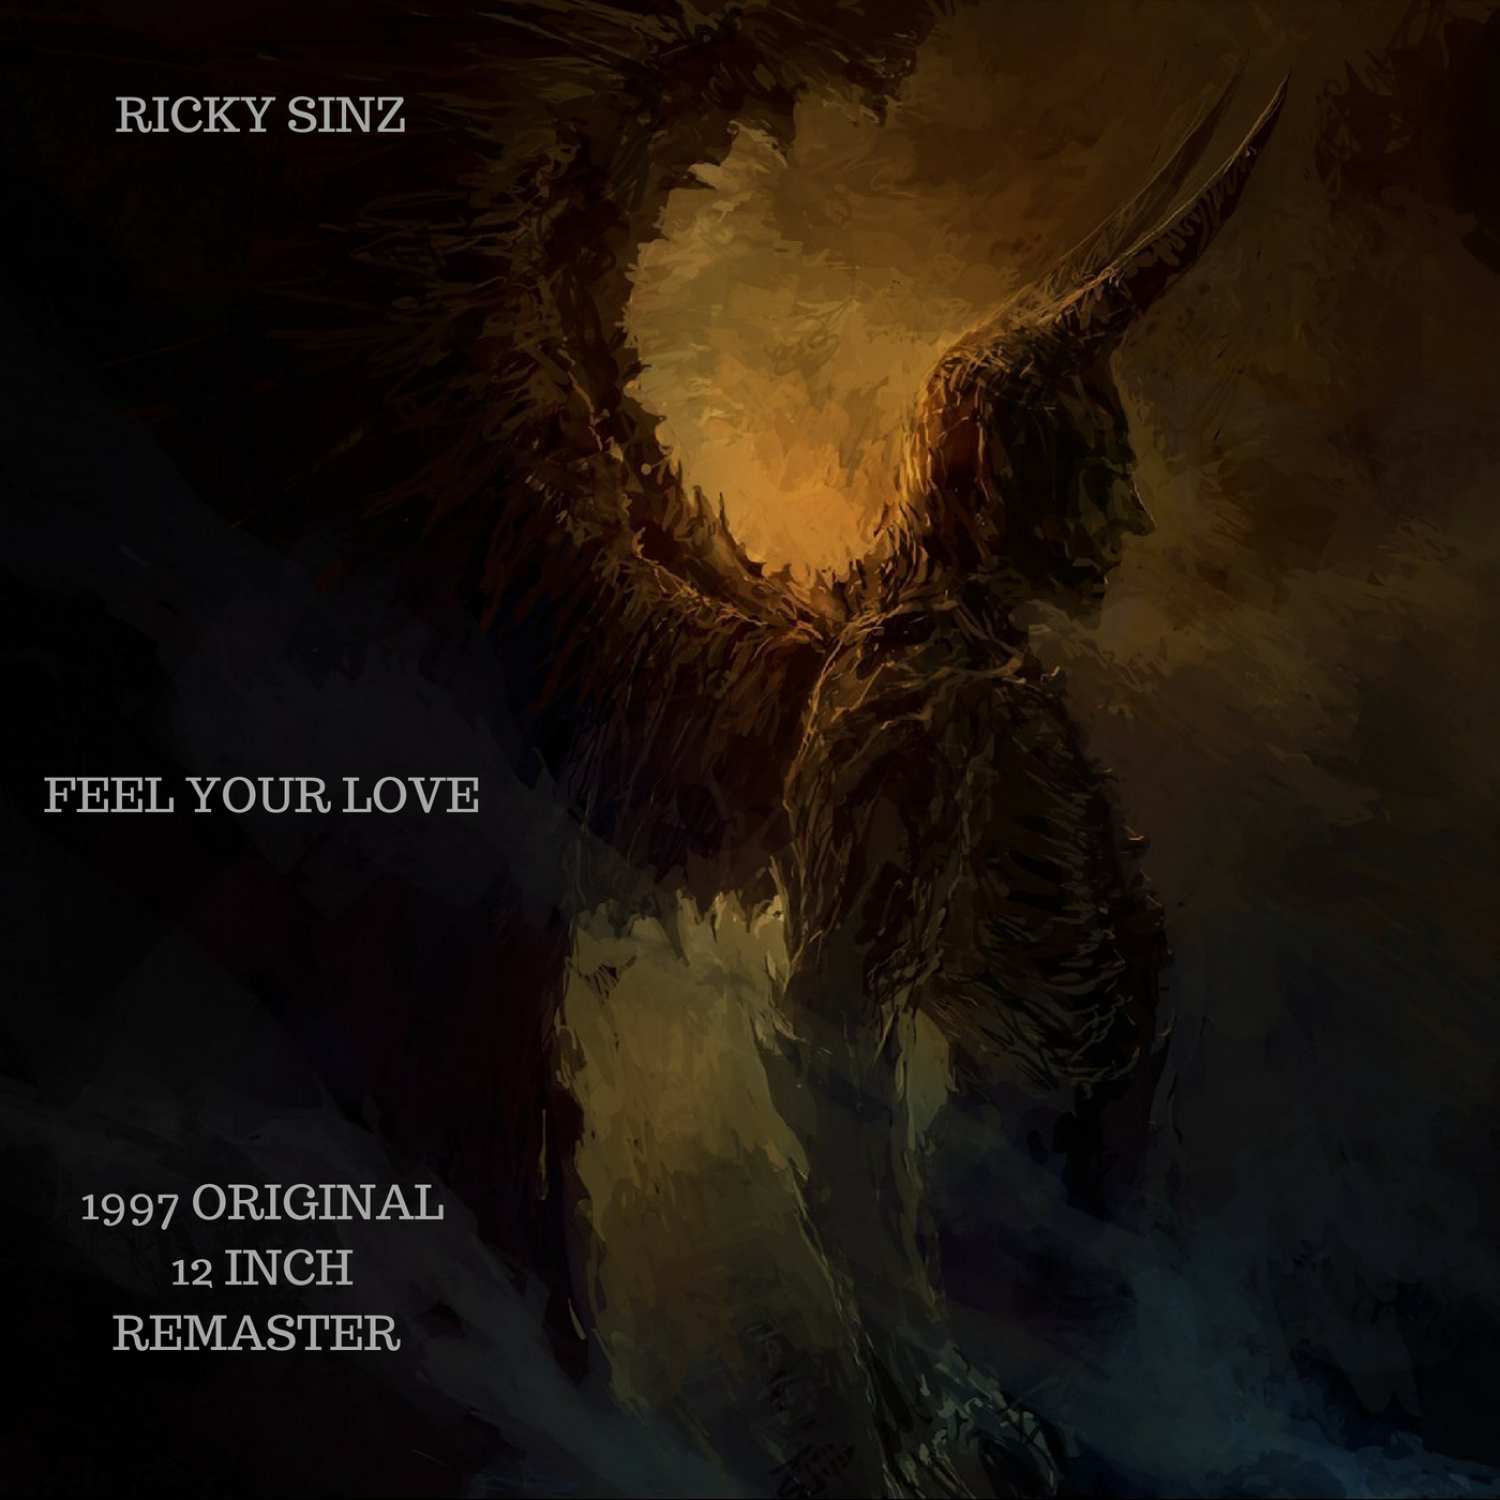 Ricky Sinz - Feel Your Love (original 1997 12 inch remastered)